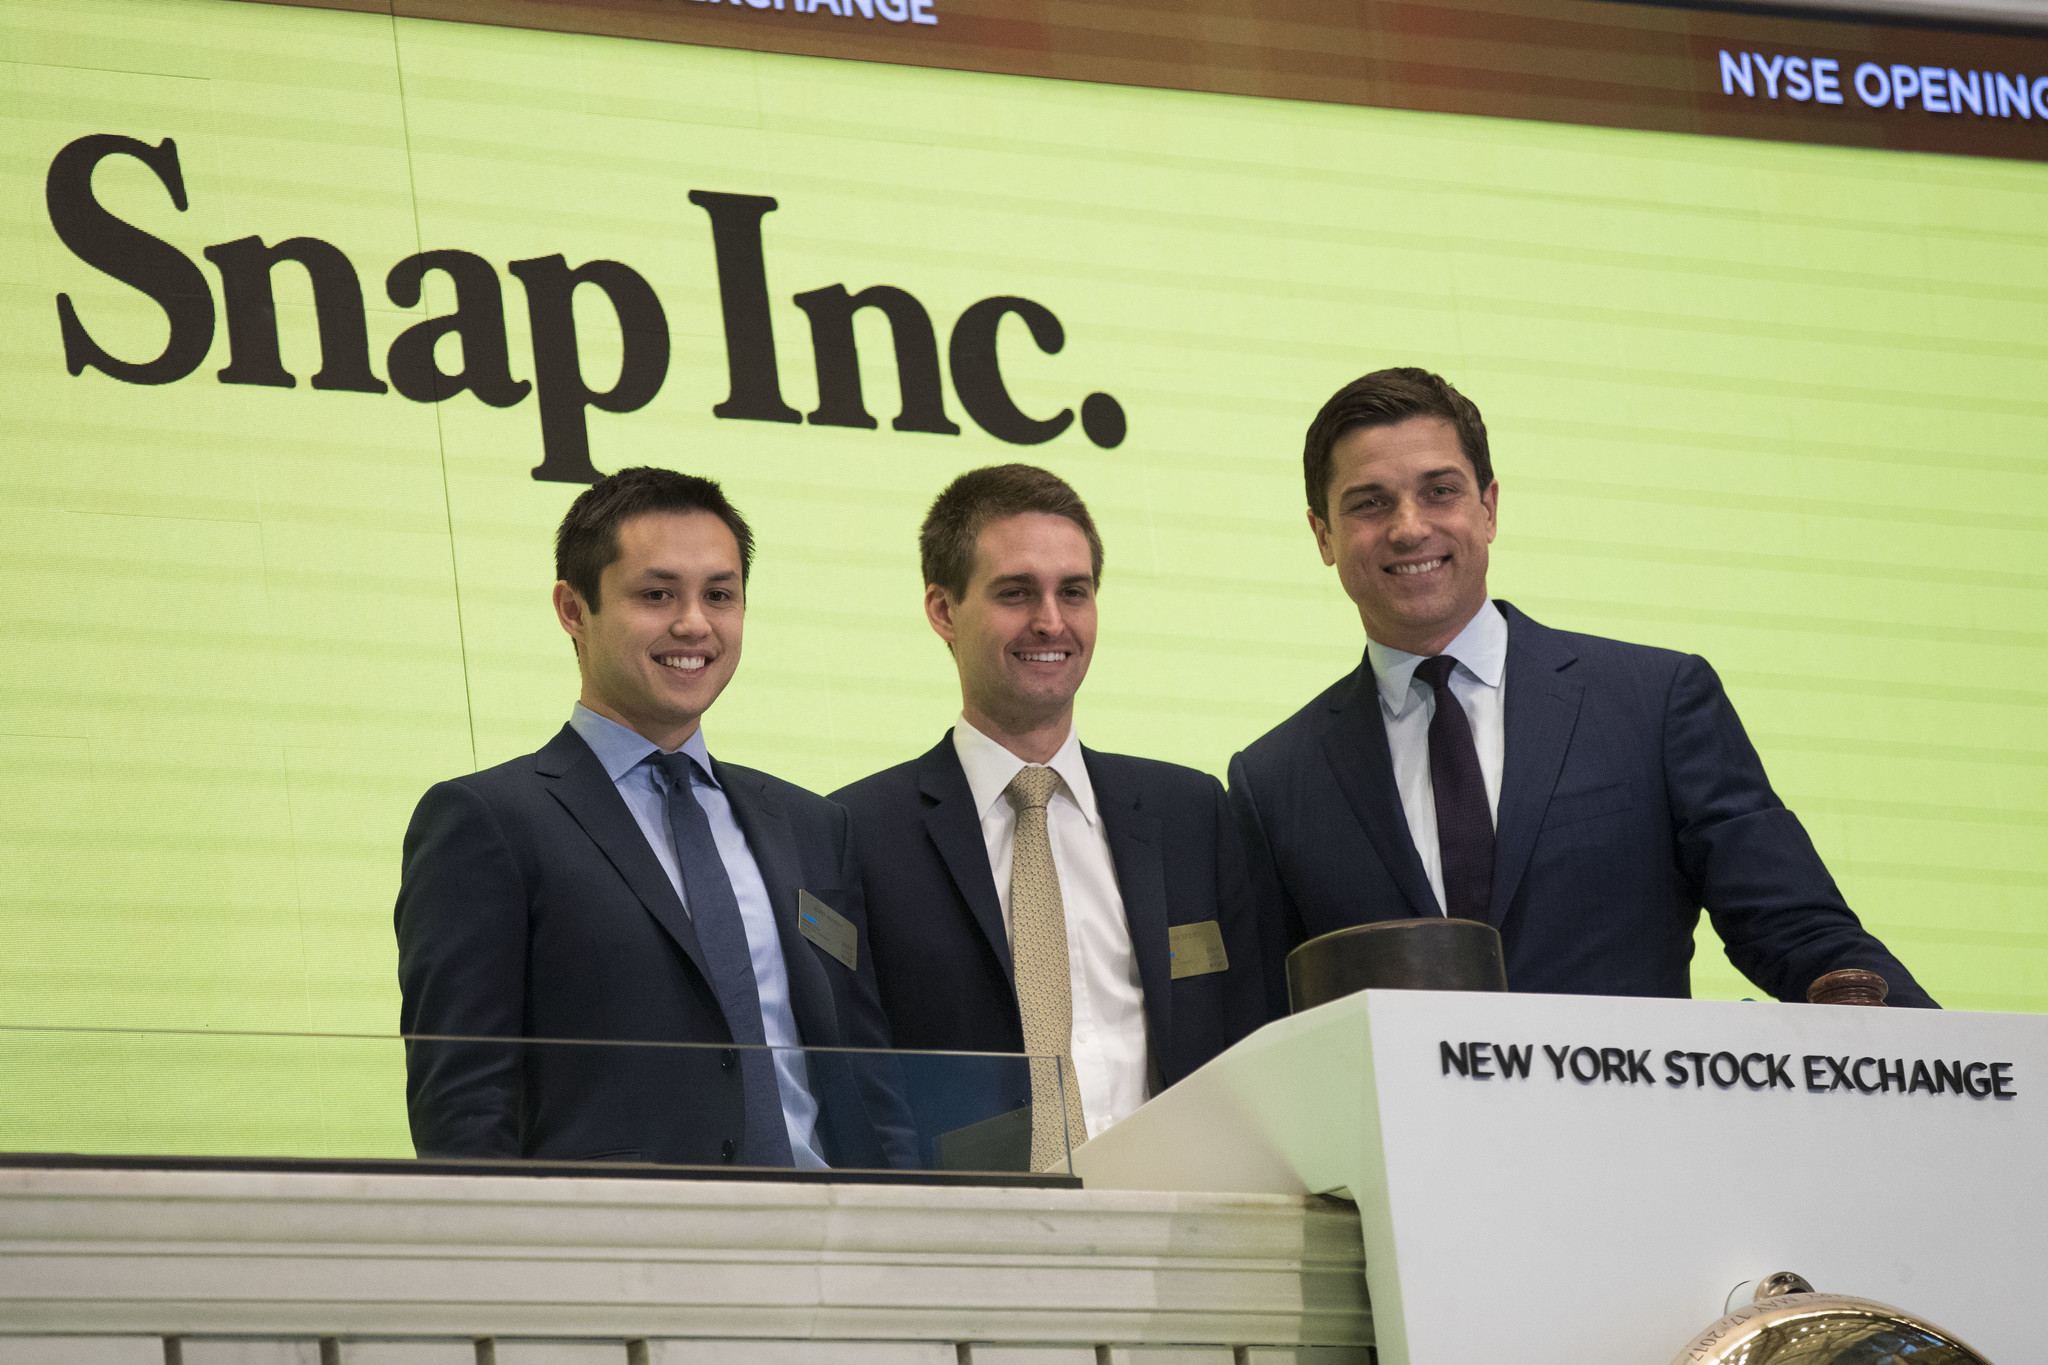 Buy snap ipo shares